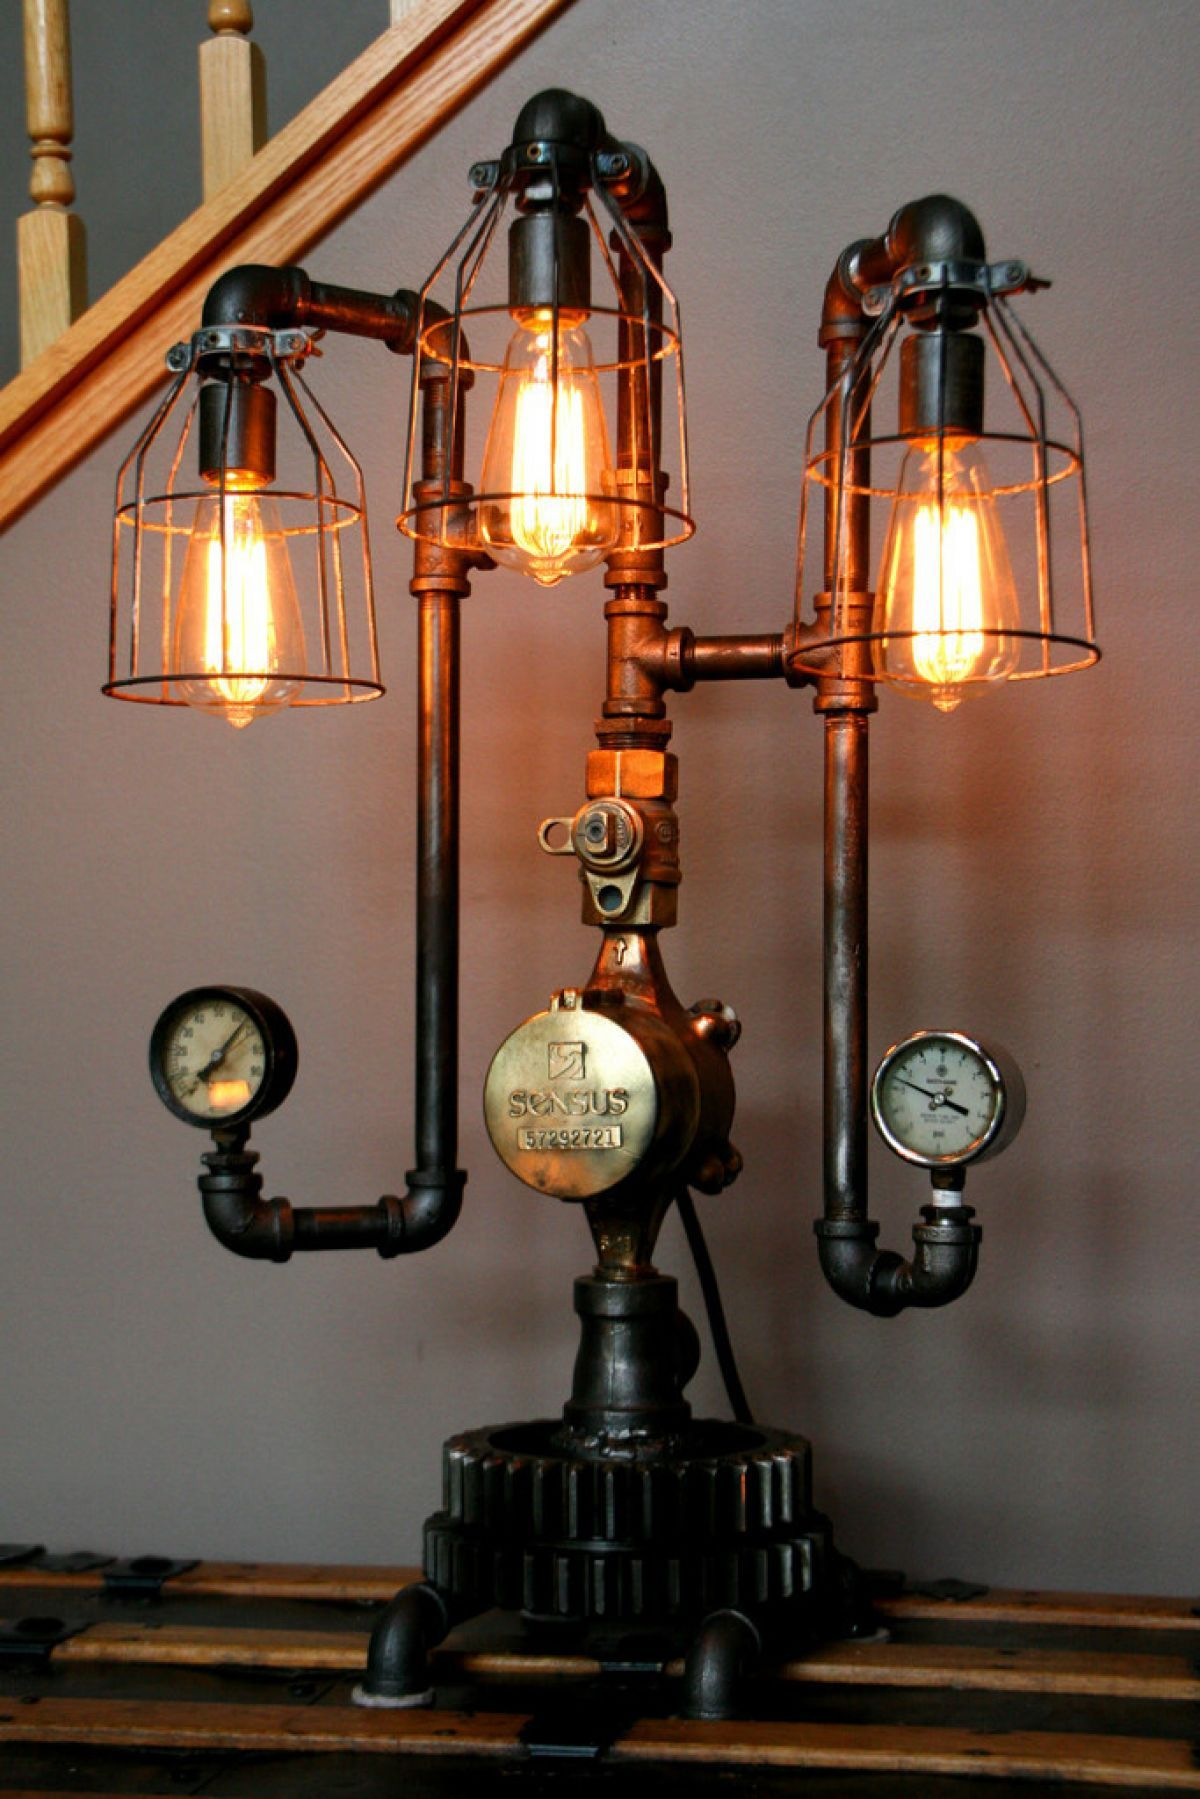 Steampunk Ideas 15 Steampunk Bedroom Decorating Ideas For Your Home